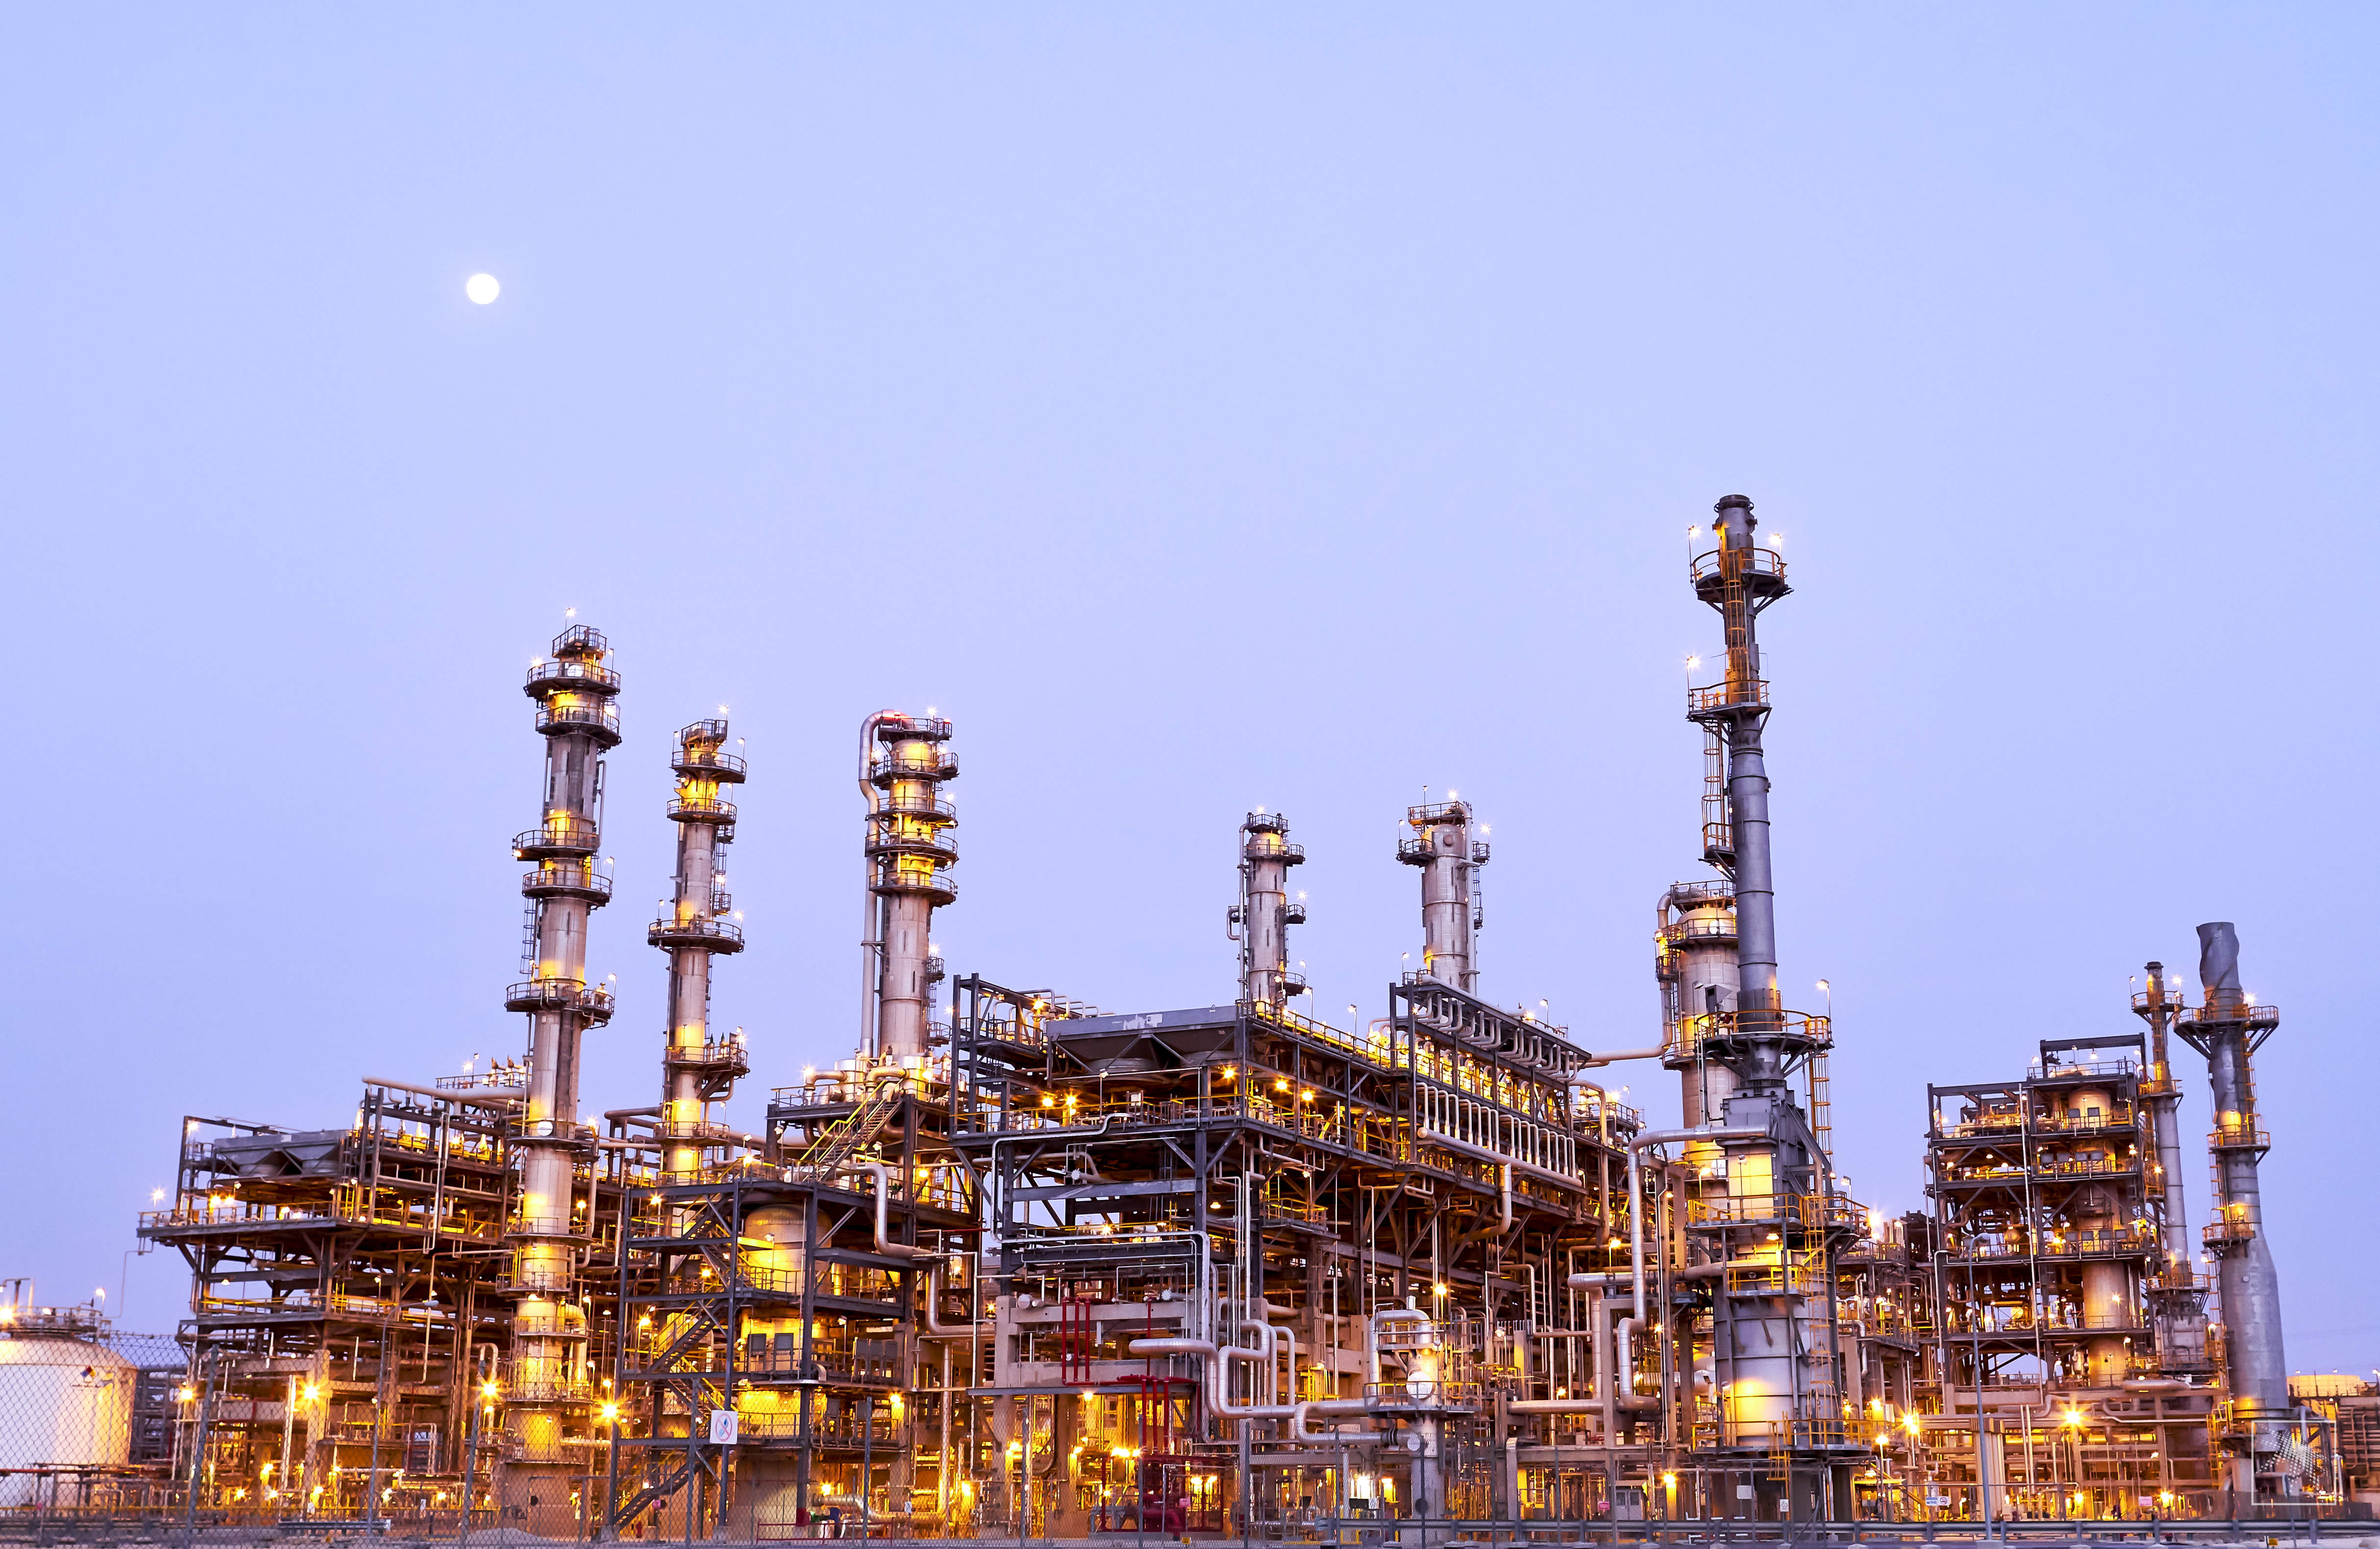 Middle East oil producers target petrochemicals for growth